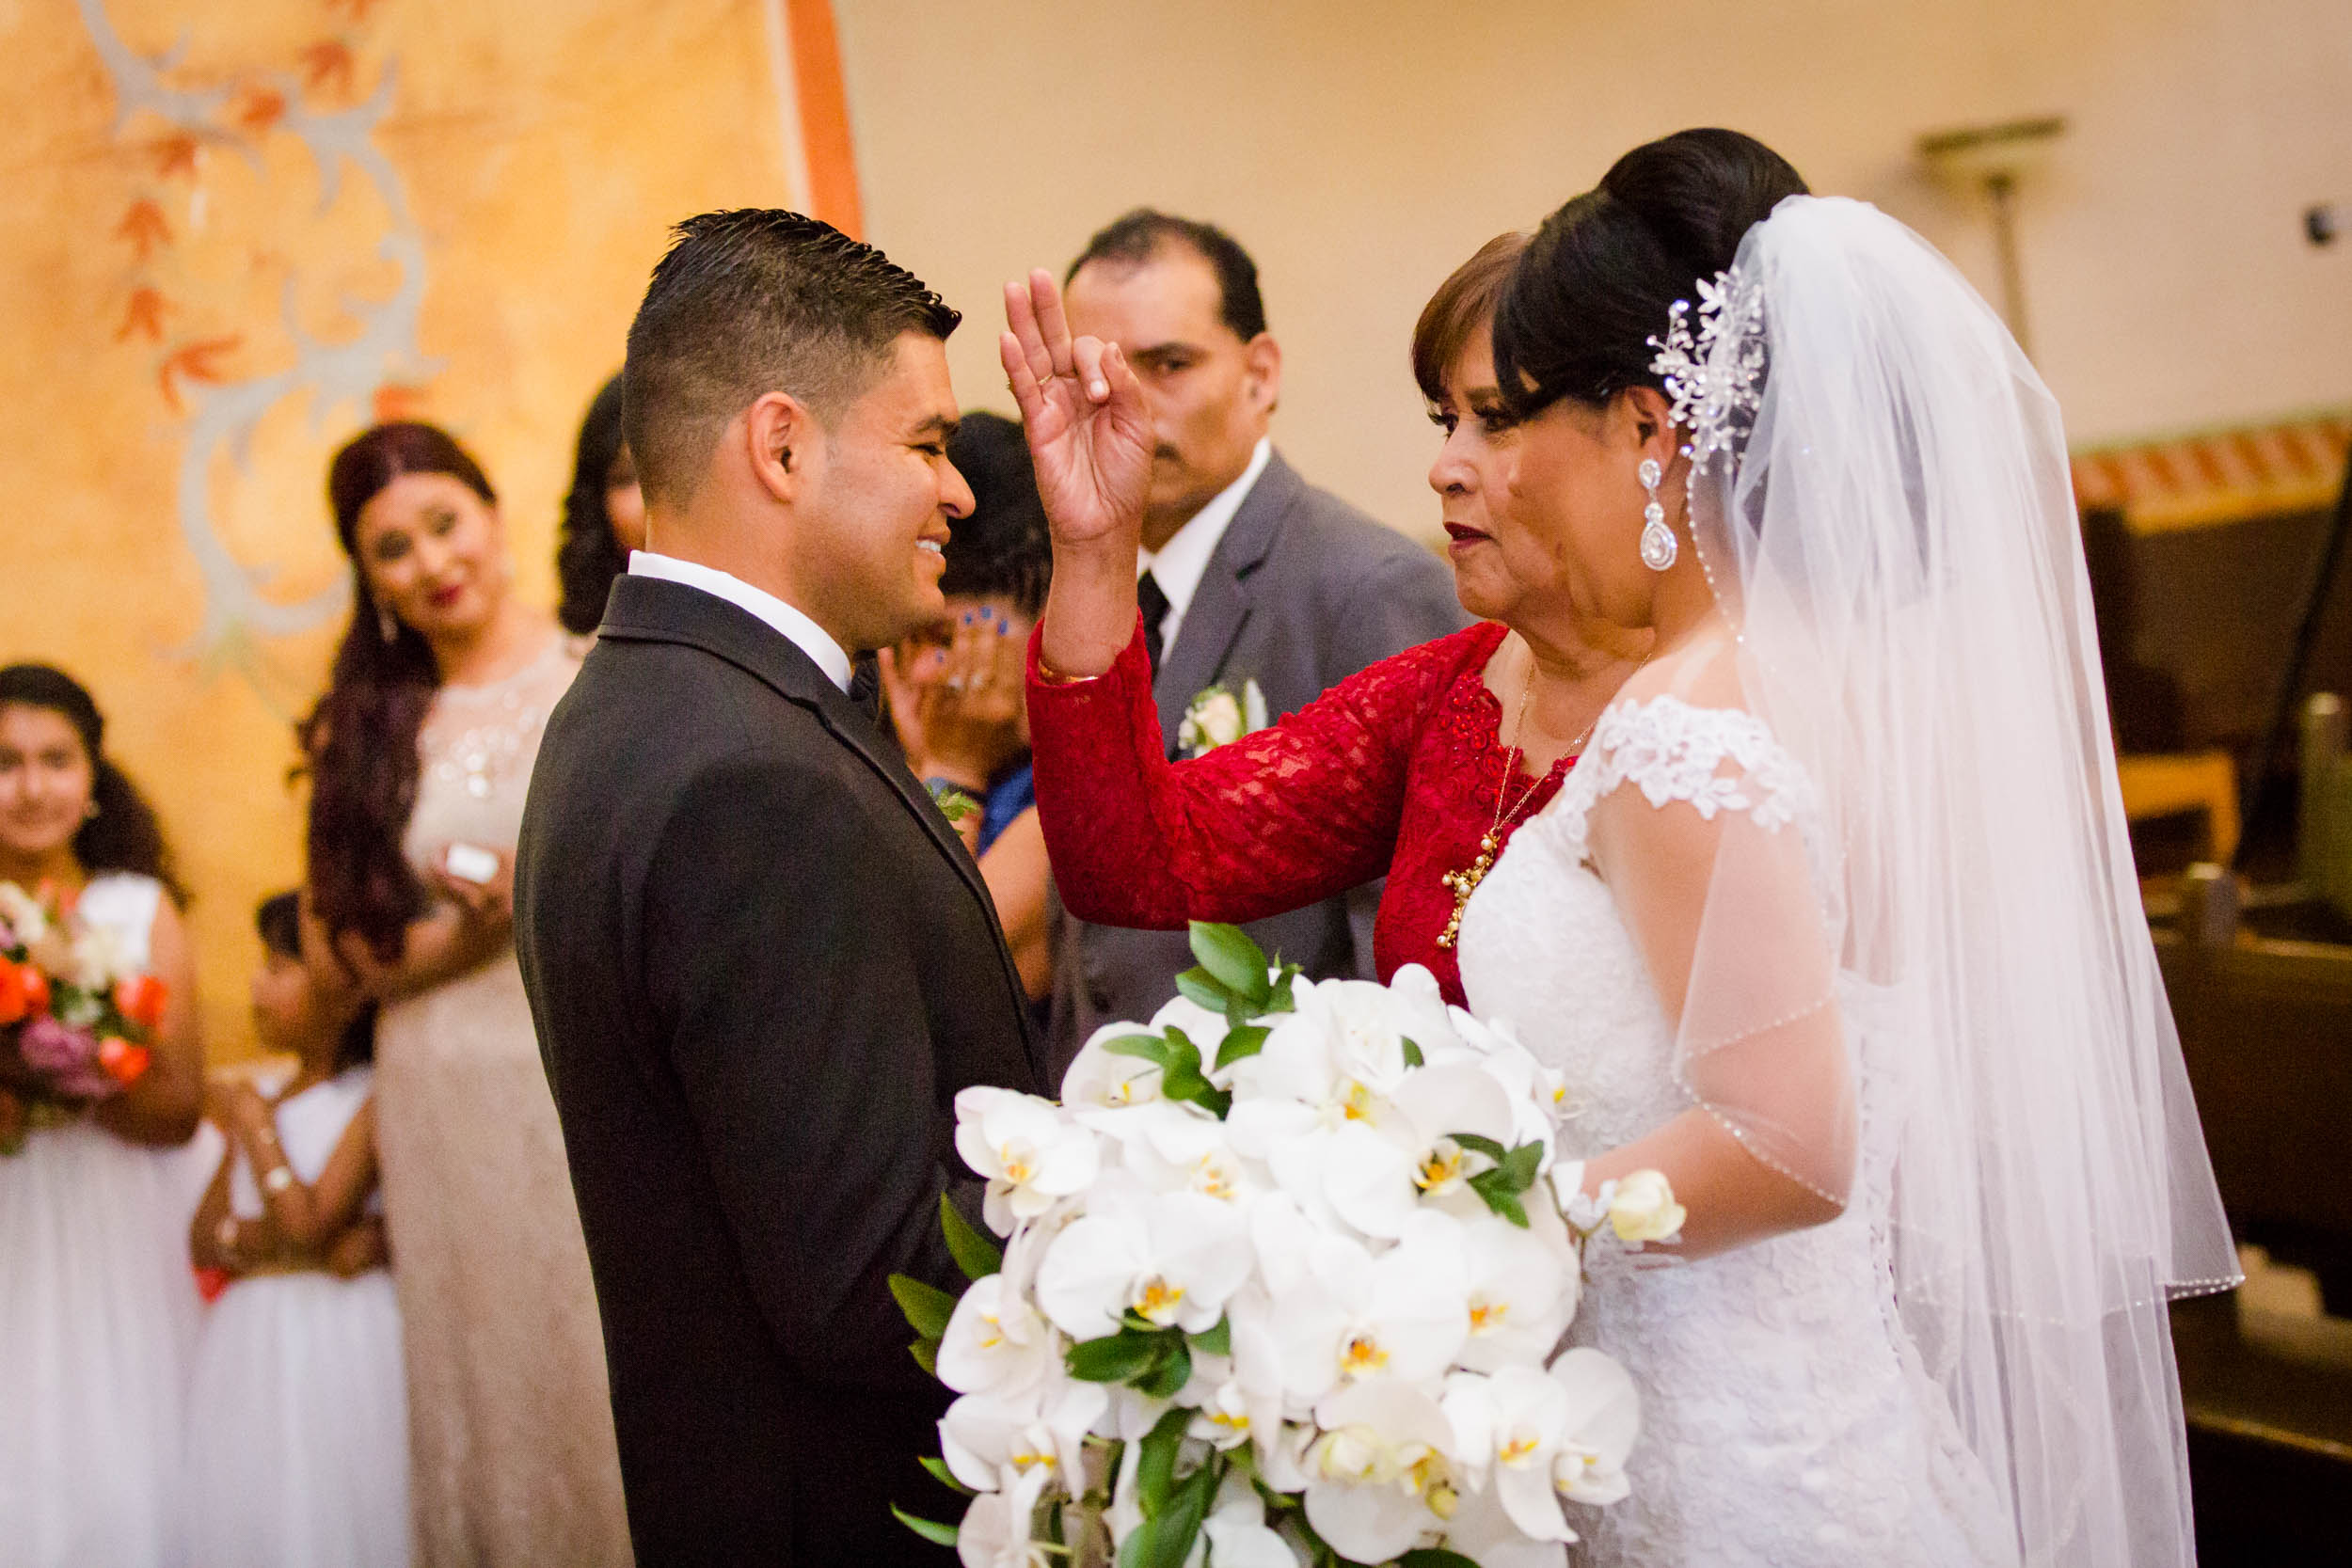 Our Wedding-253